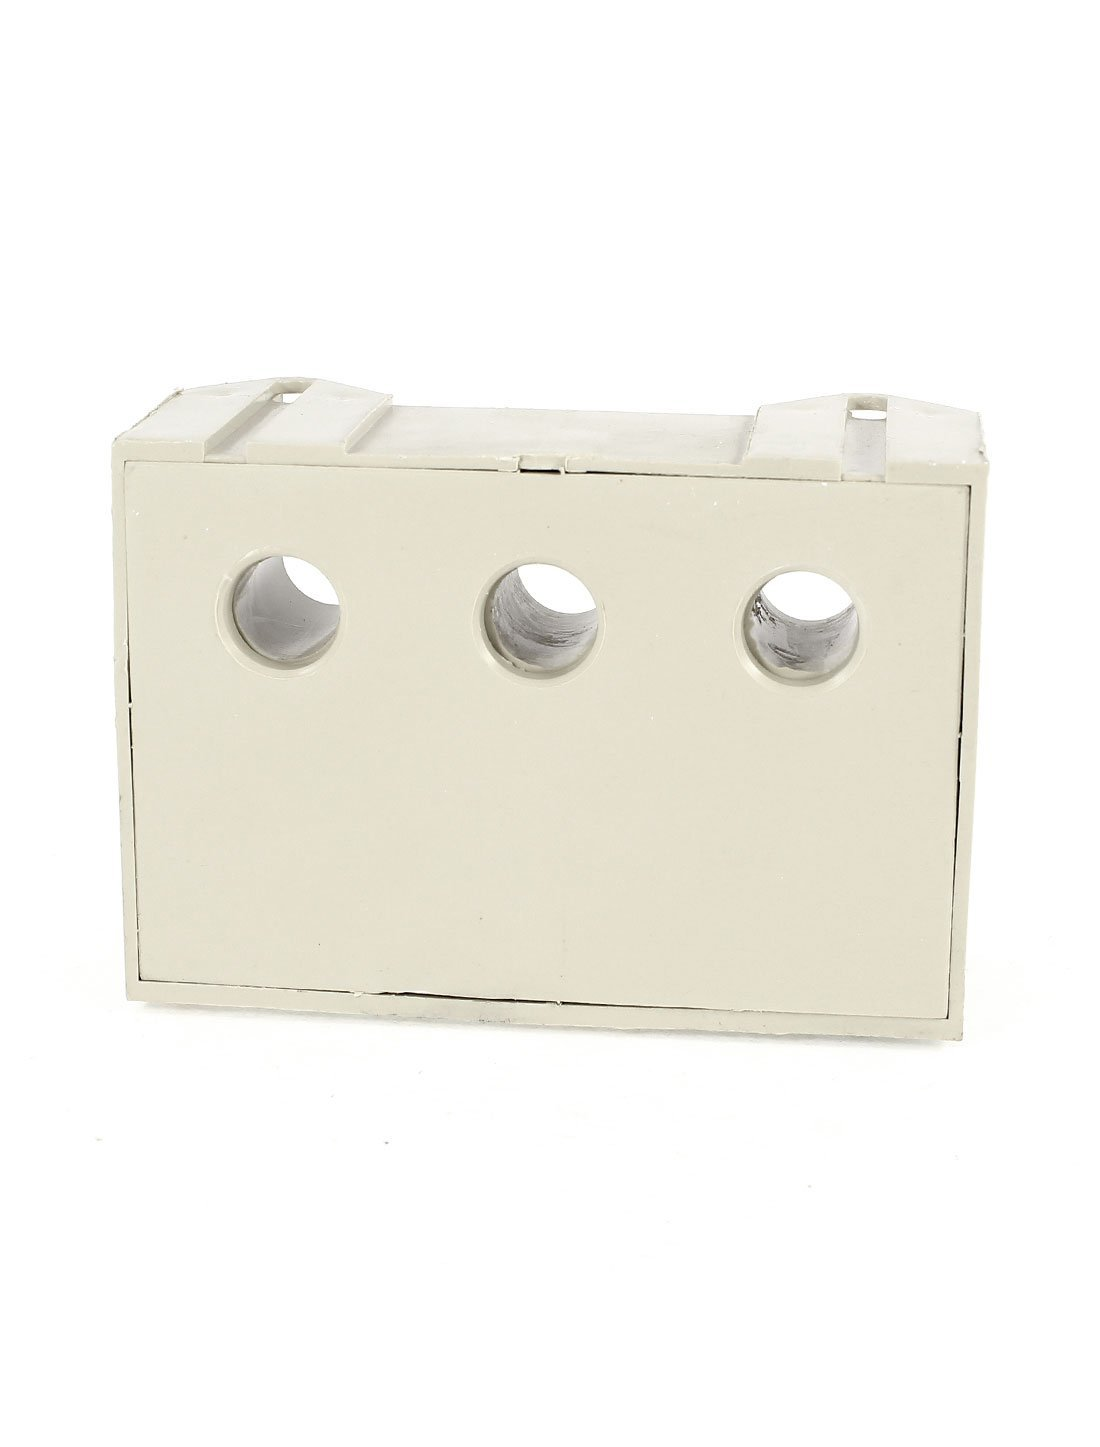 DealMux JDB-1 3 Phase 4-10 Ampere Adjustable Current Motor Circuit Protector